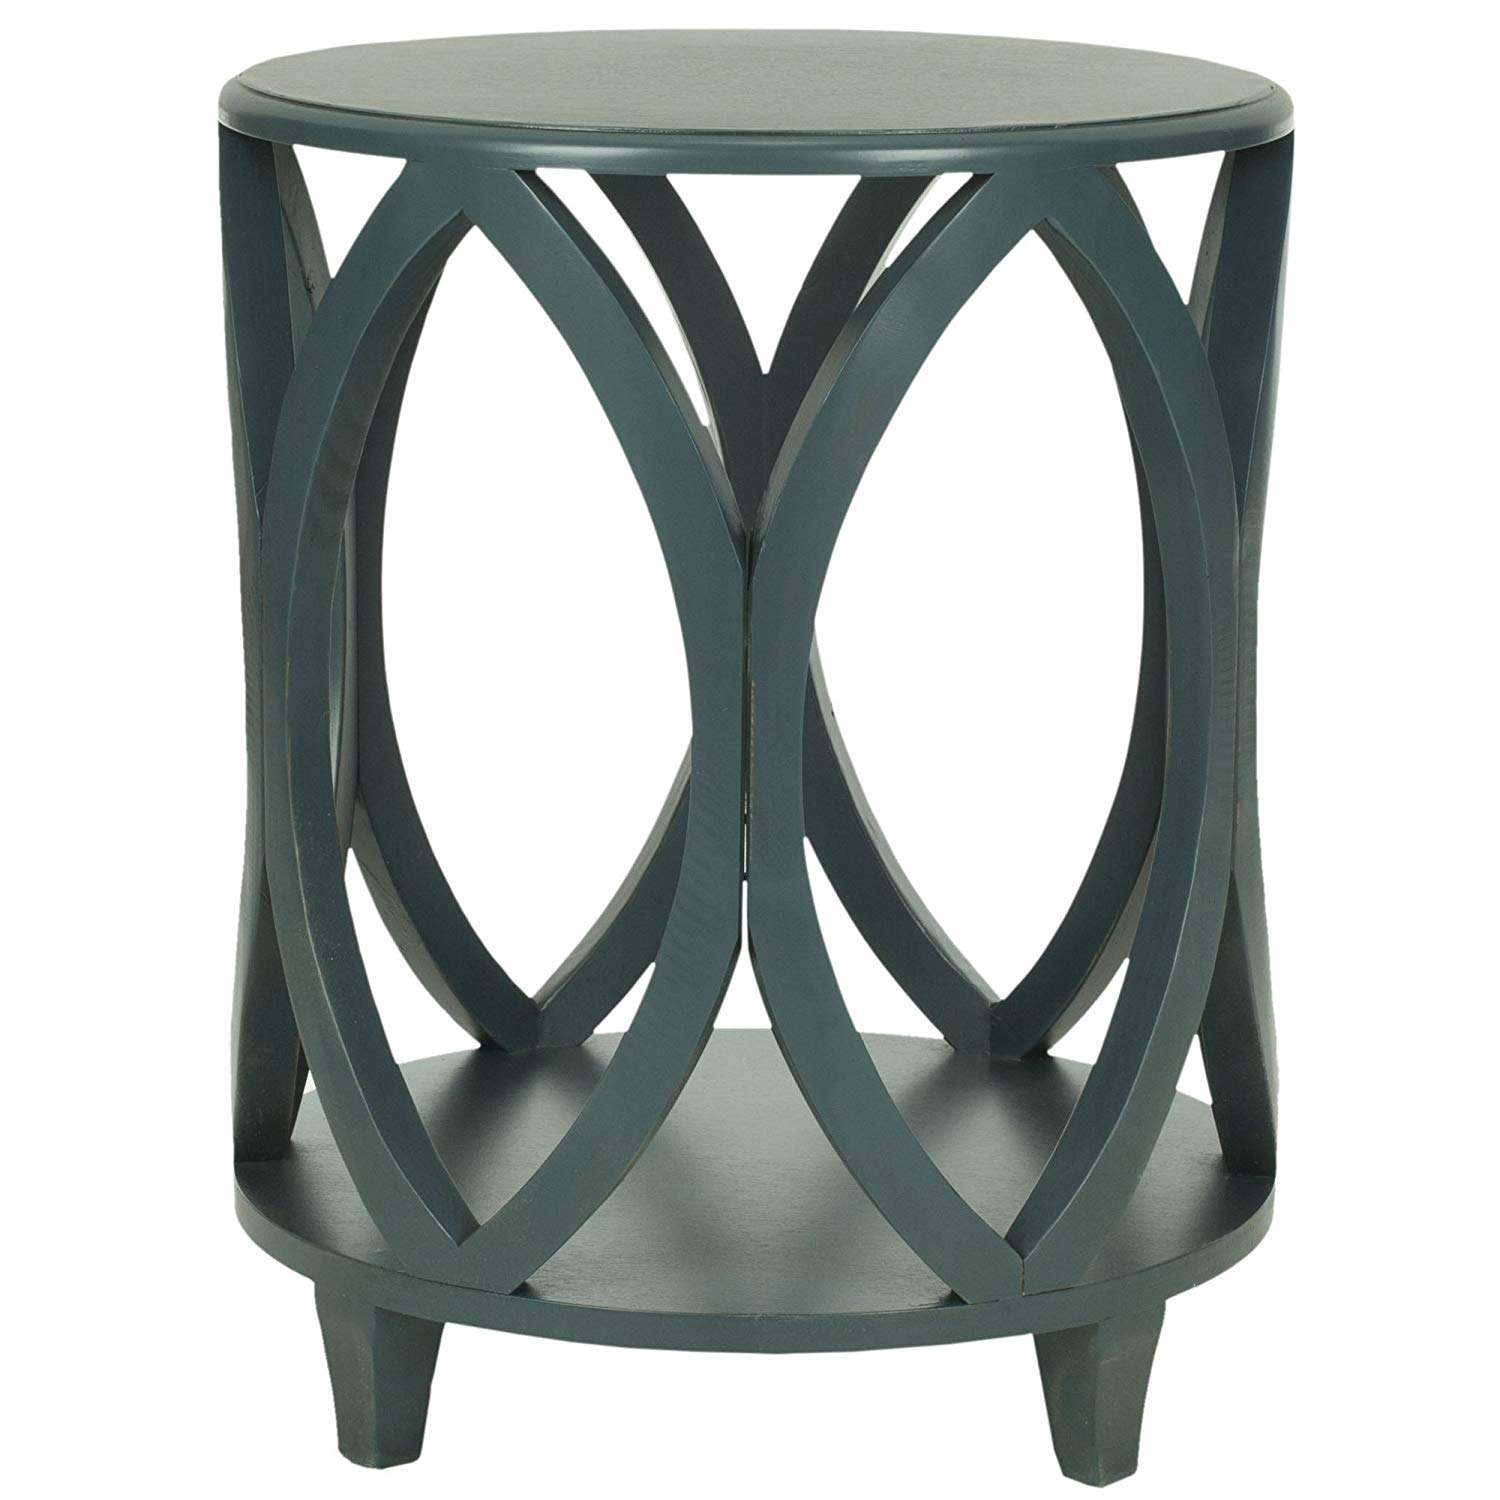 safavieh american homes collection janika steel teal accent table off white kitchen dining barnwood teak rocking chairs patio set with fire pit nate berkus target brown nightstand